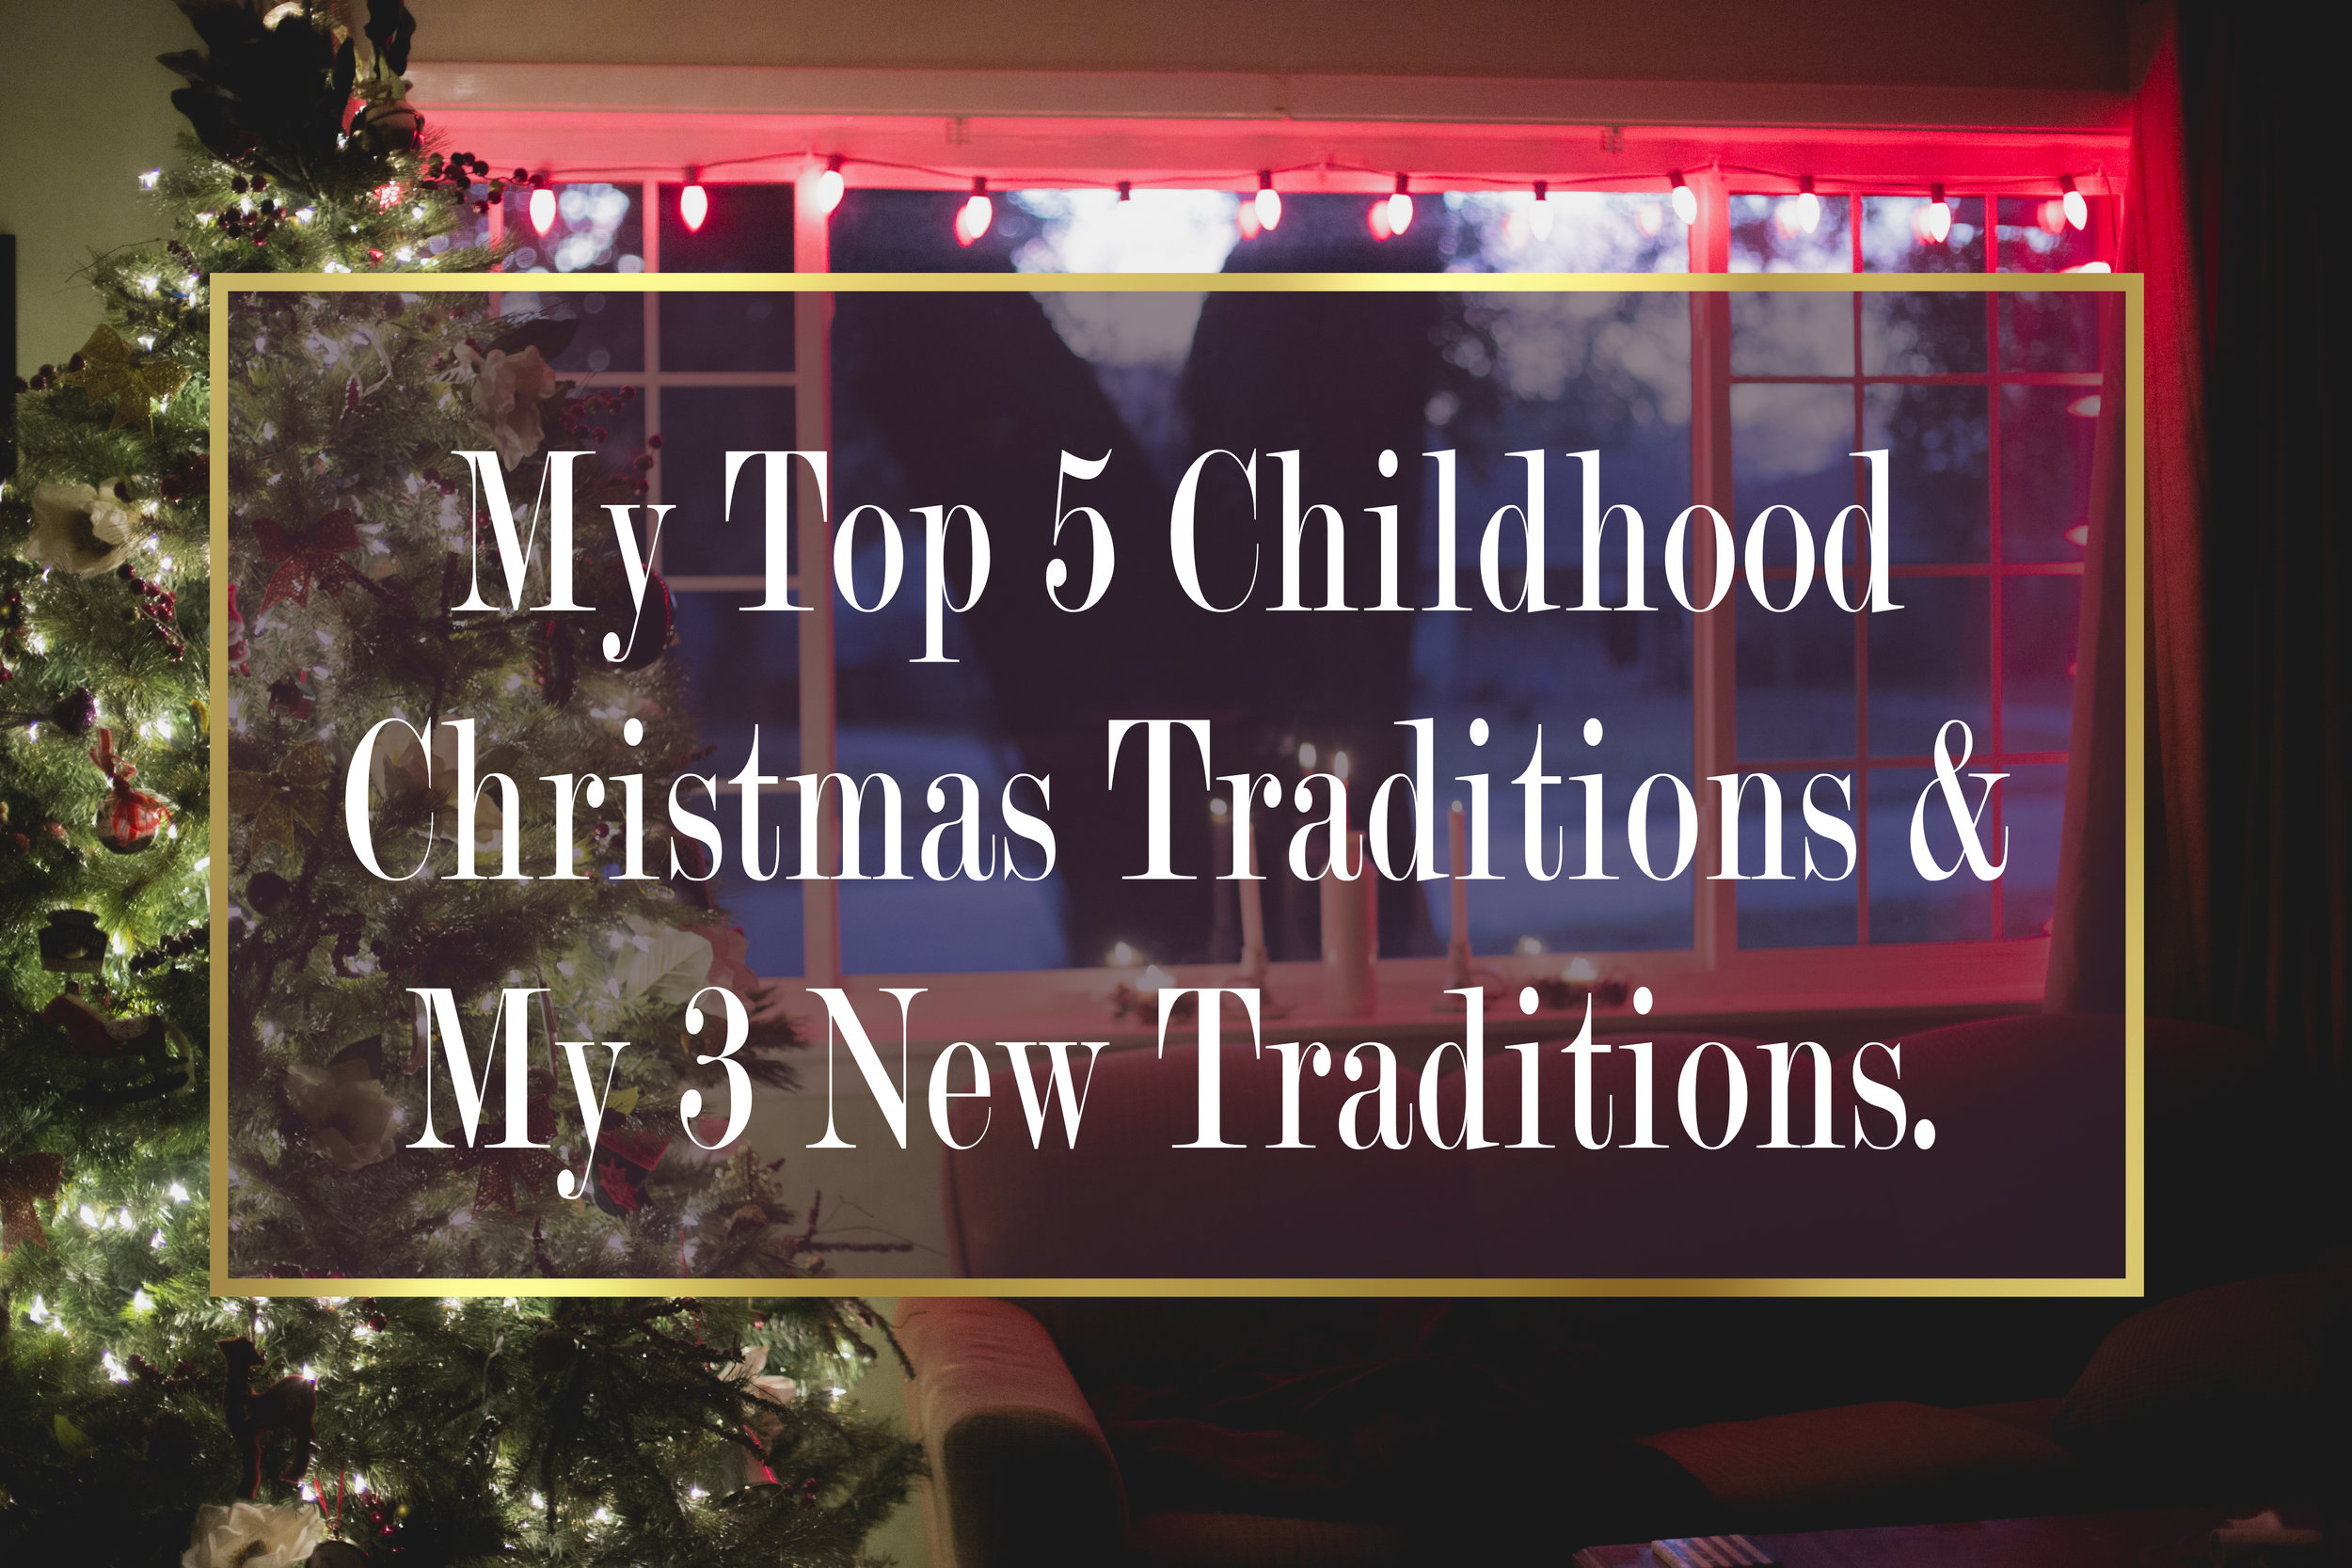 Magnolia Grace Photography | Shreveport Boudoir, Beauty, & Wedding Photographer | Bossier Boudoir, Beauty, & Wedding Photographer | My Top 5 Childhood Christmas Traditions & My 3 New Traditions.